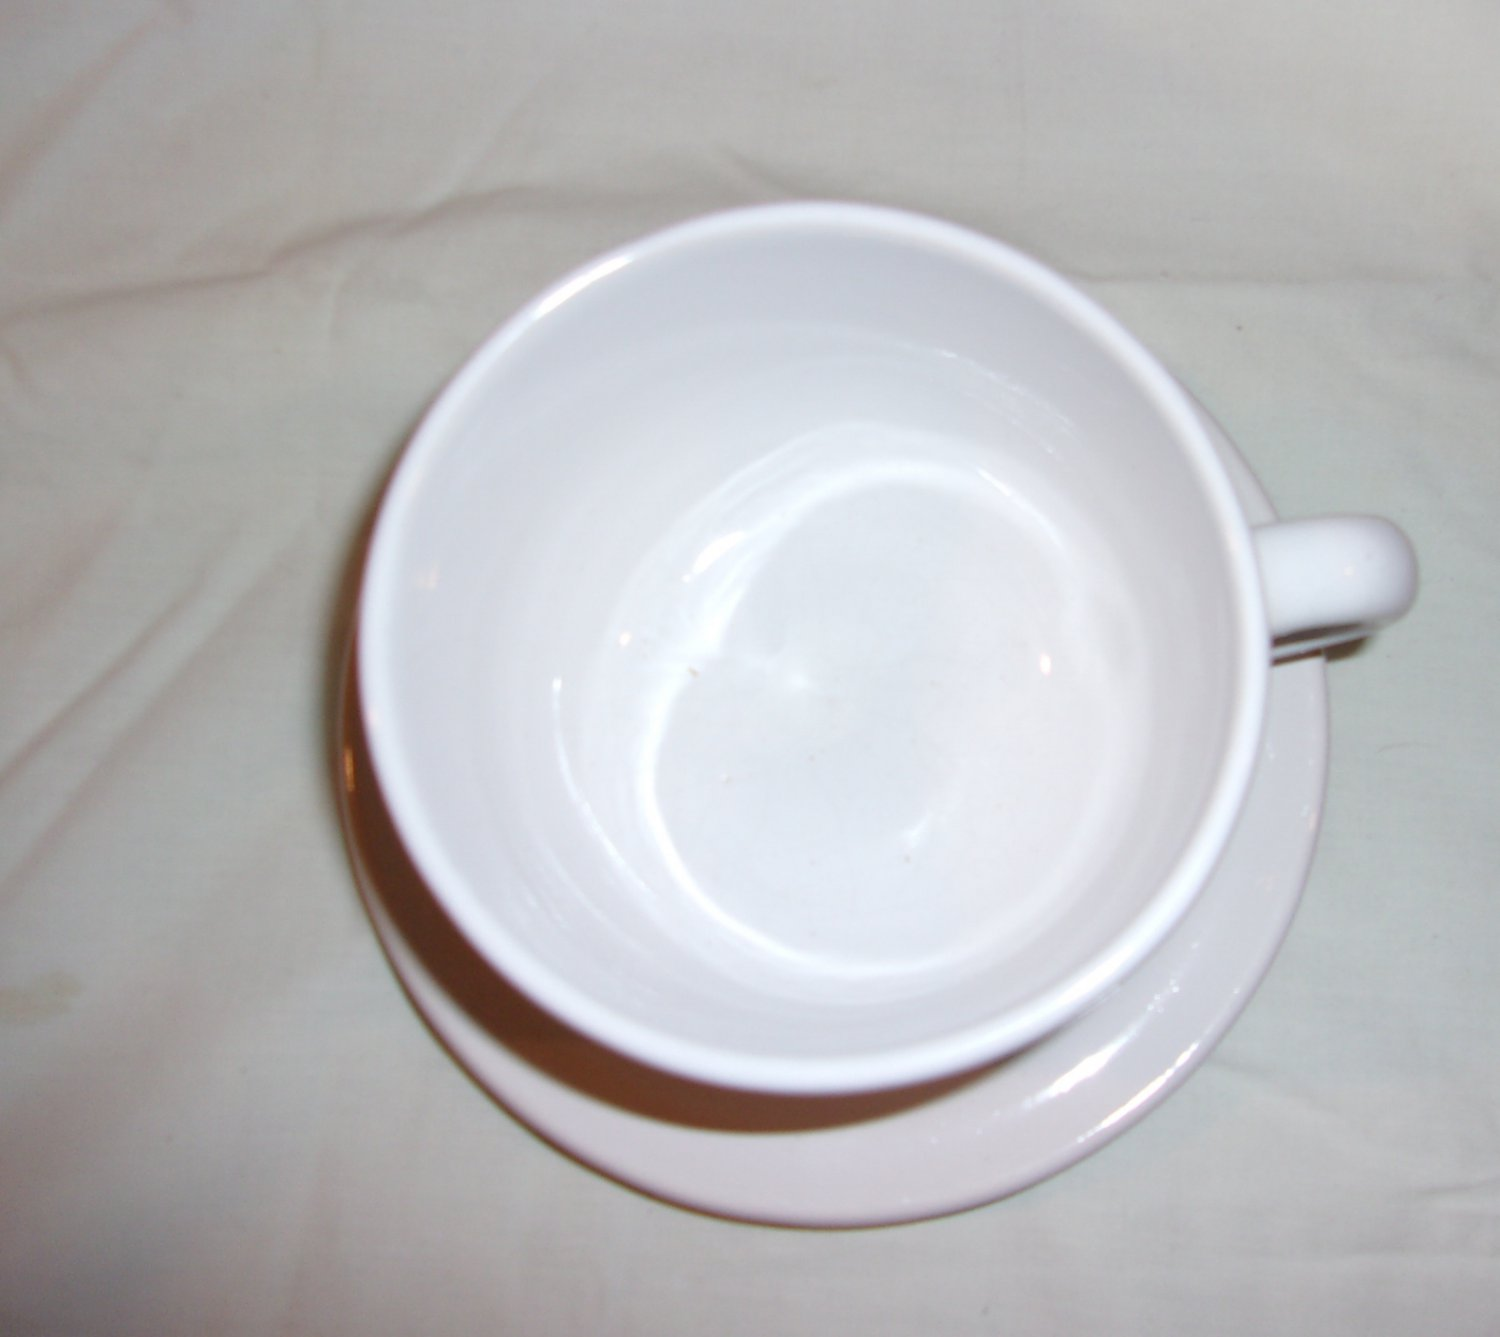 3 Benson & Hedges 100's cereal bowls with saucer